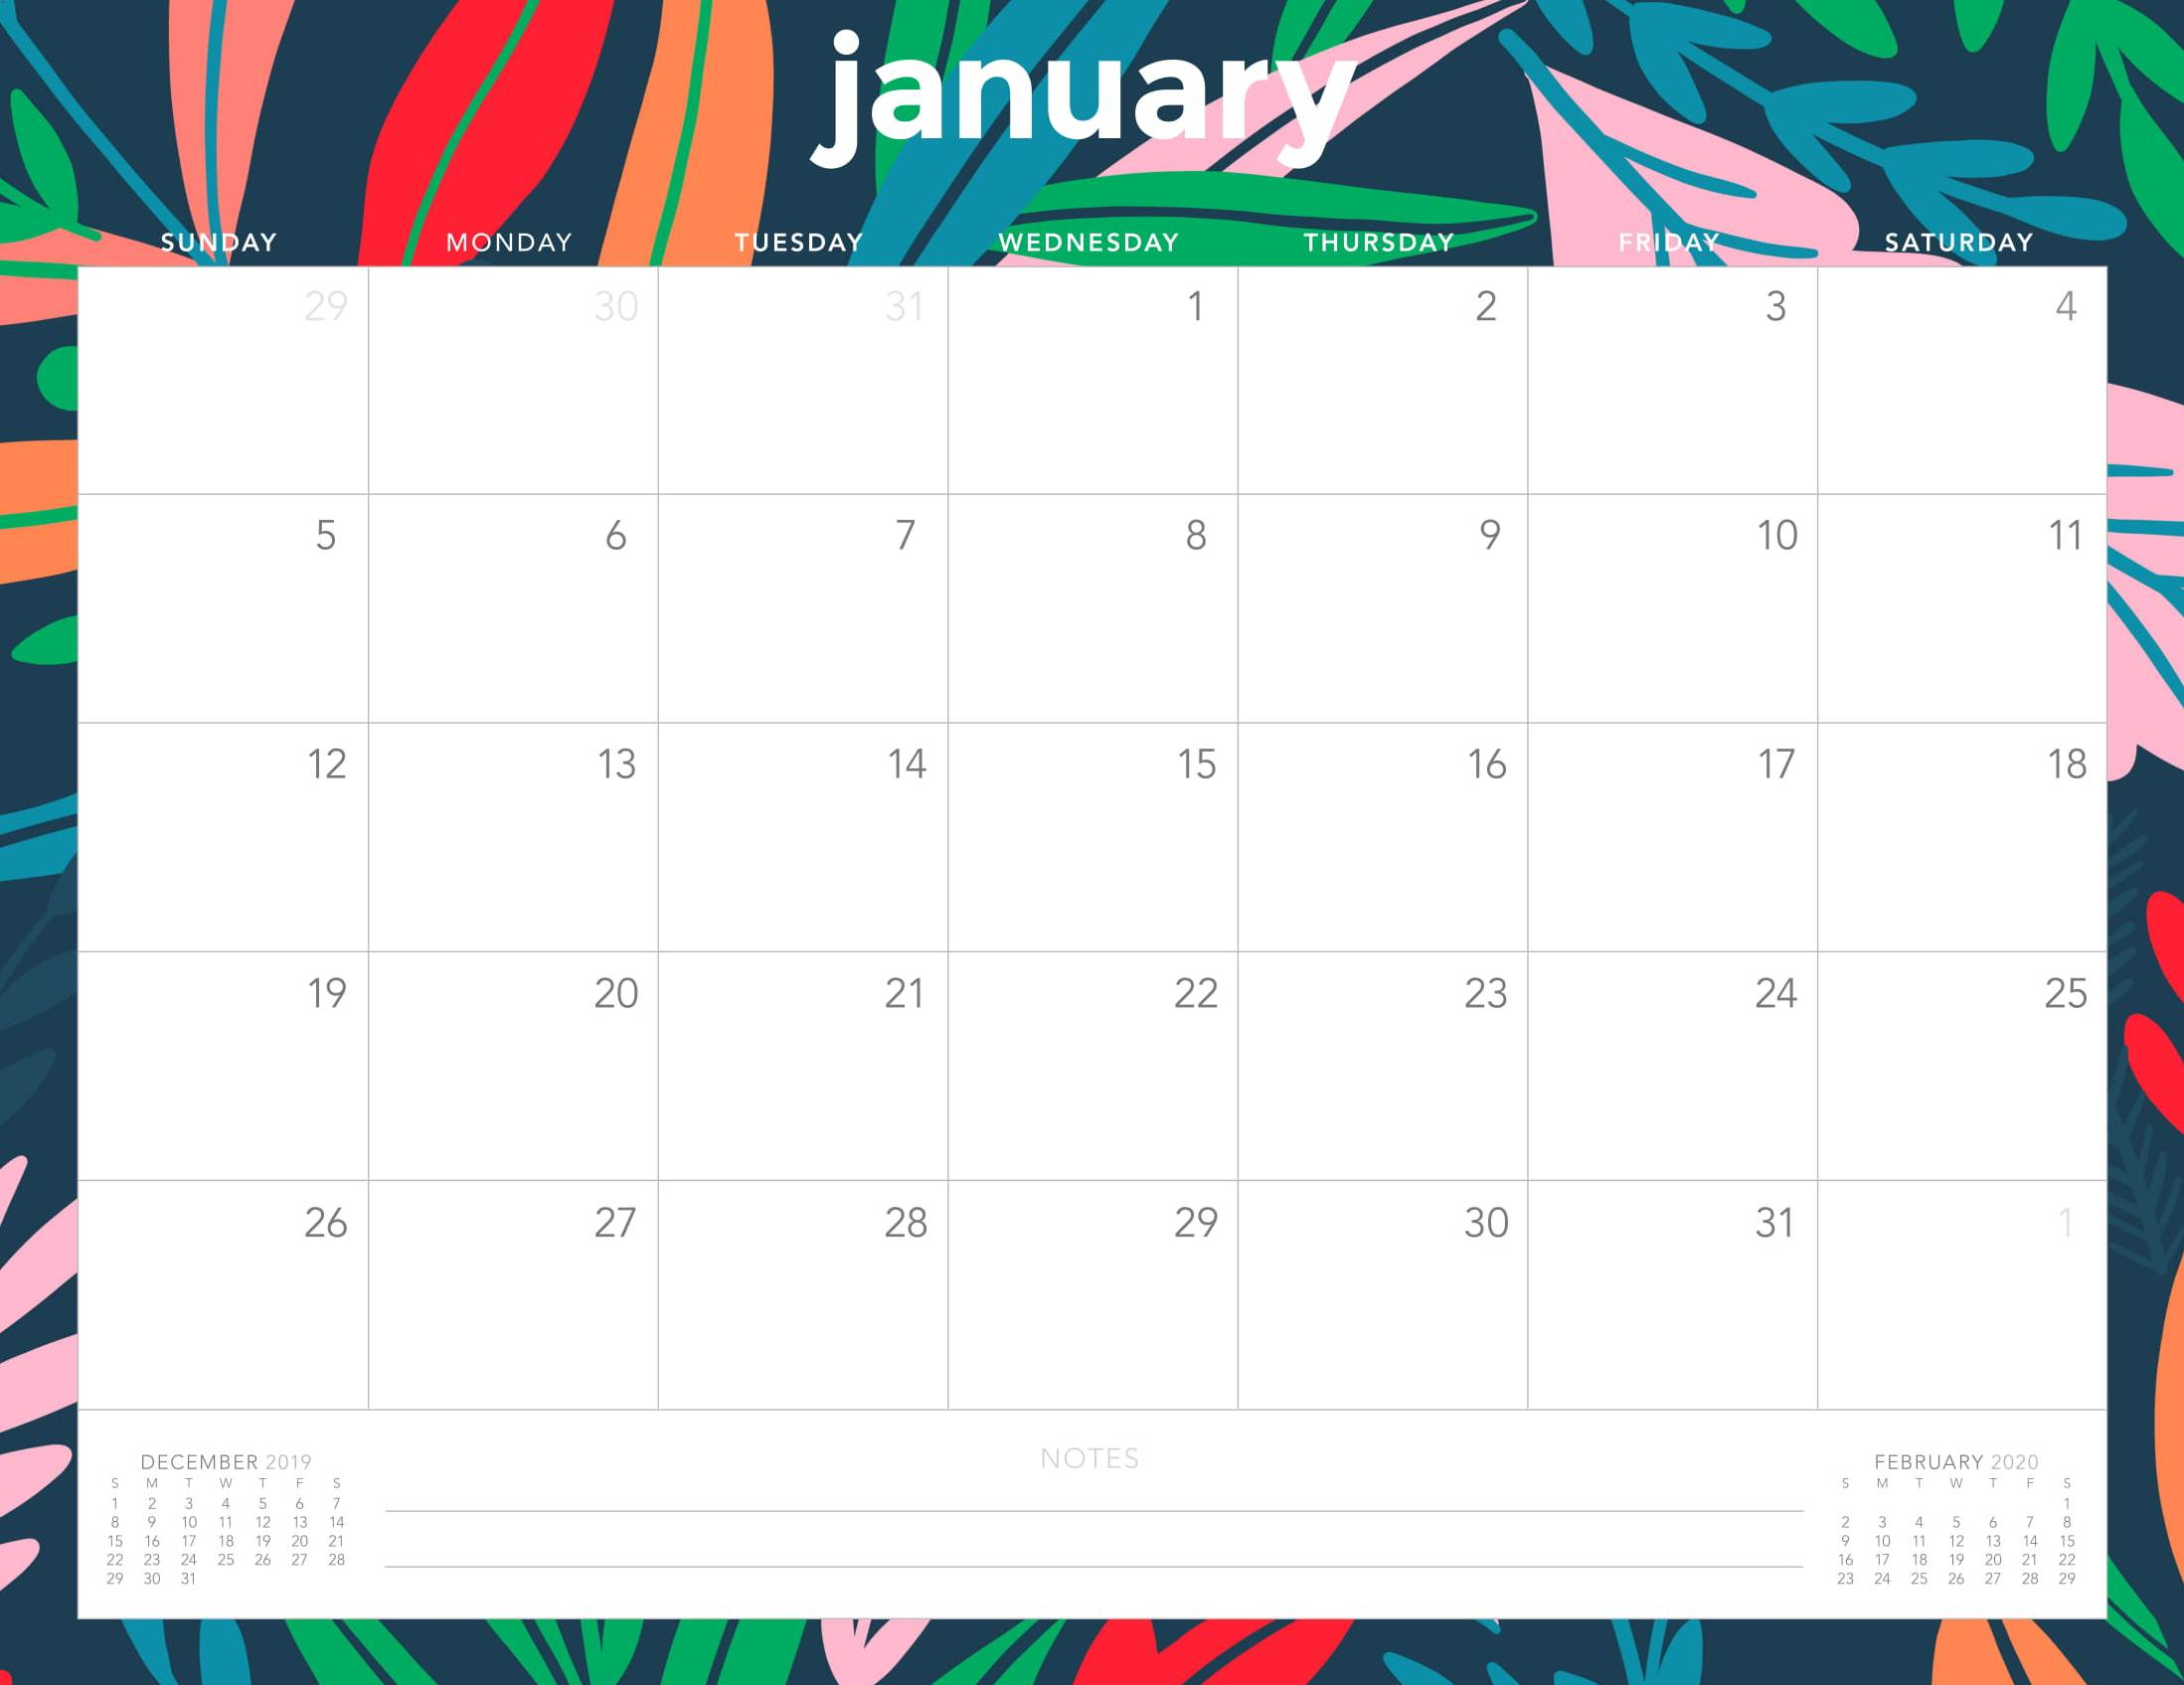 Monthly Desk Calendar January 2020